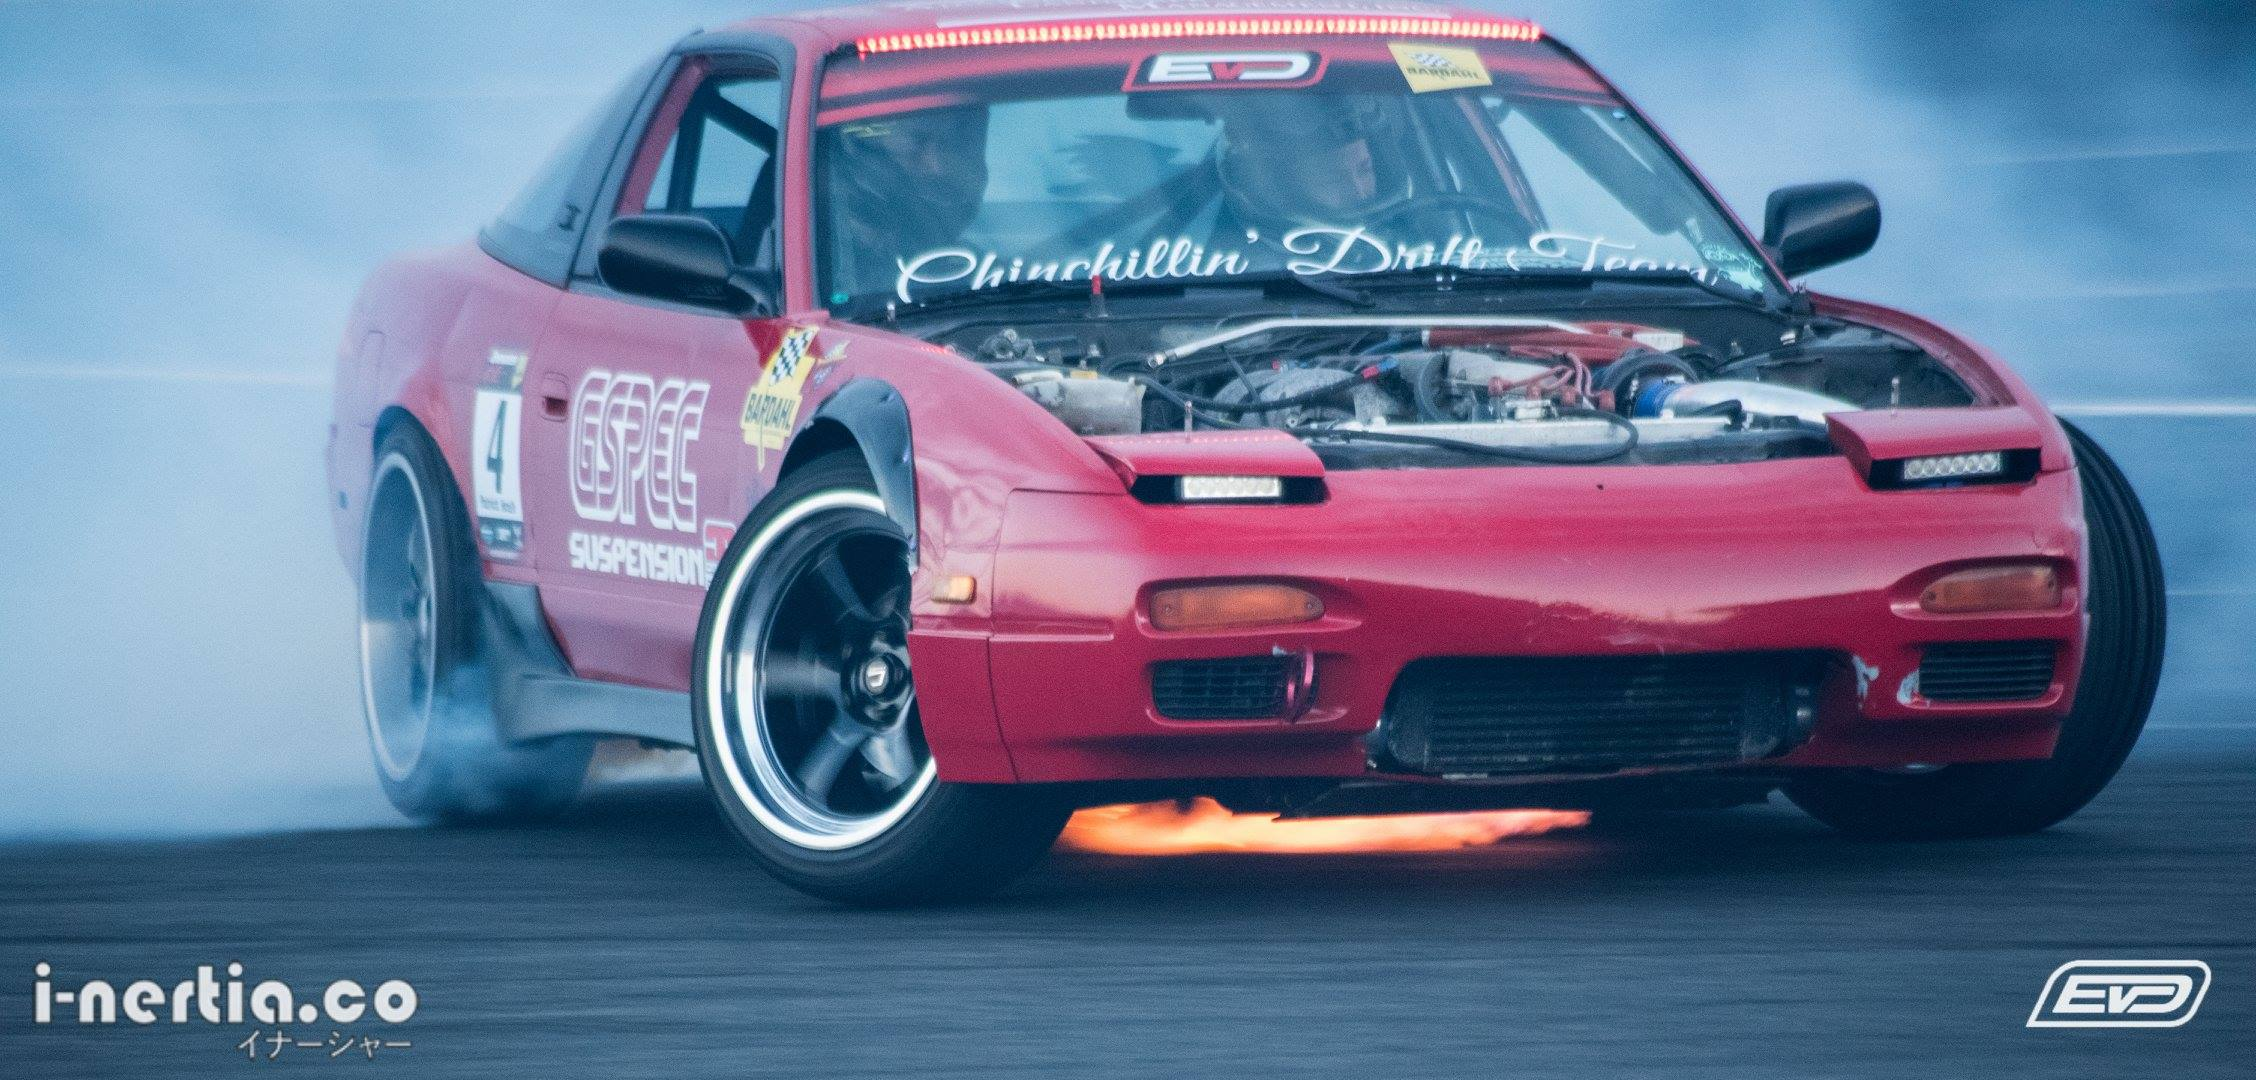 Aug 27th Drift